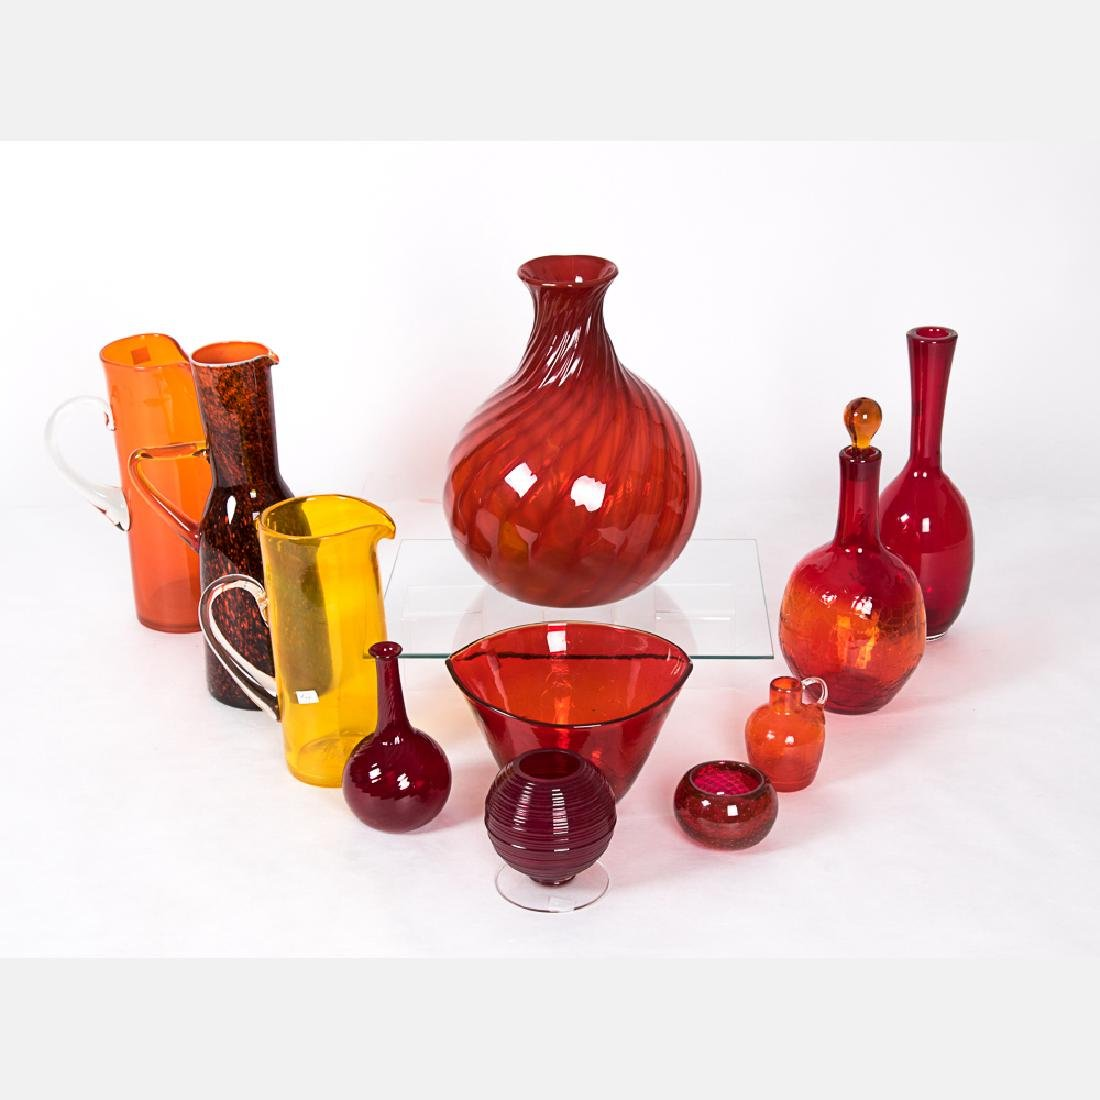 A Collection of Blown Colored Glass Serving and